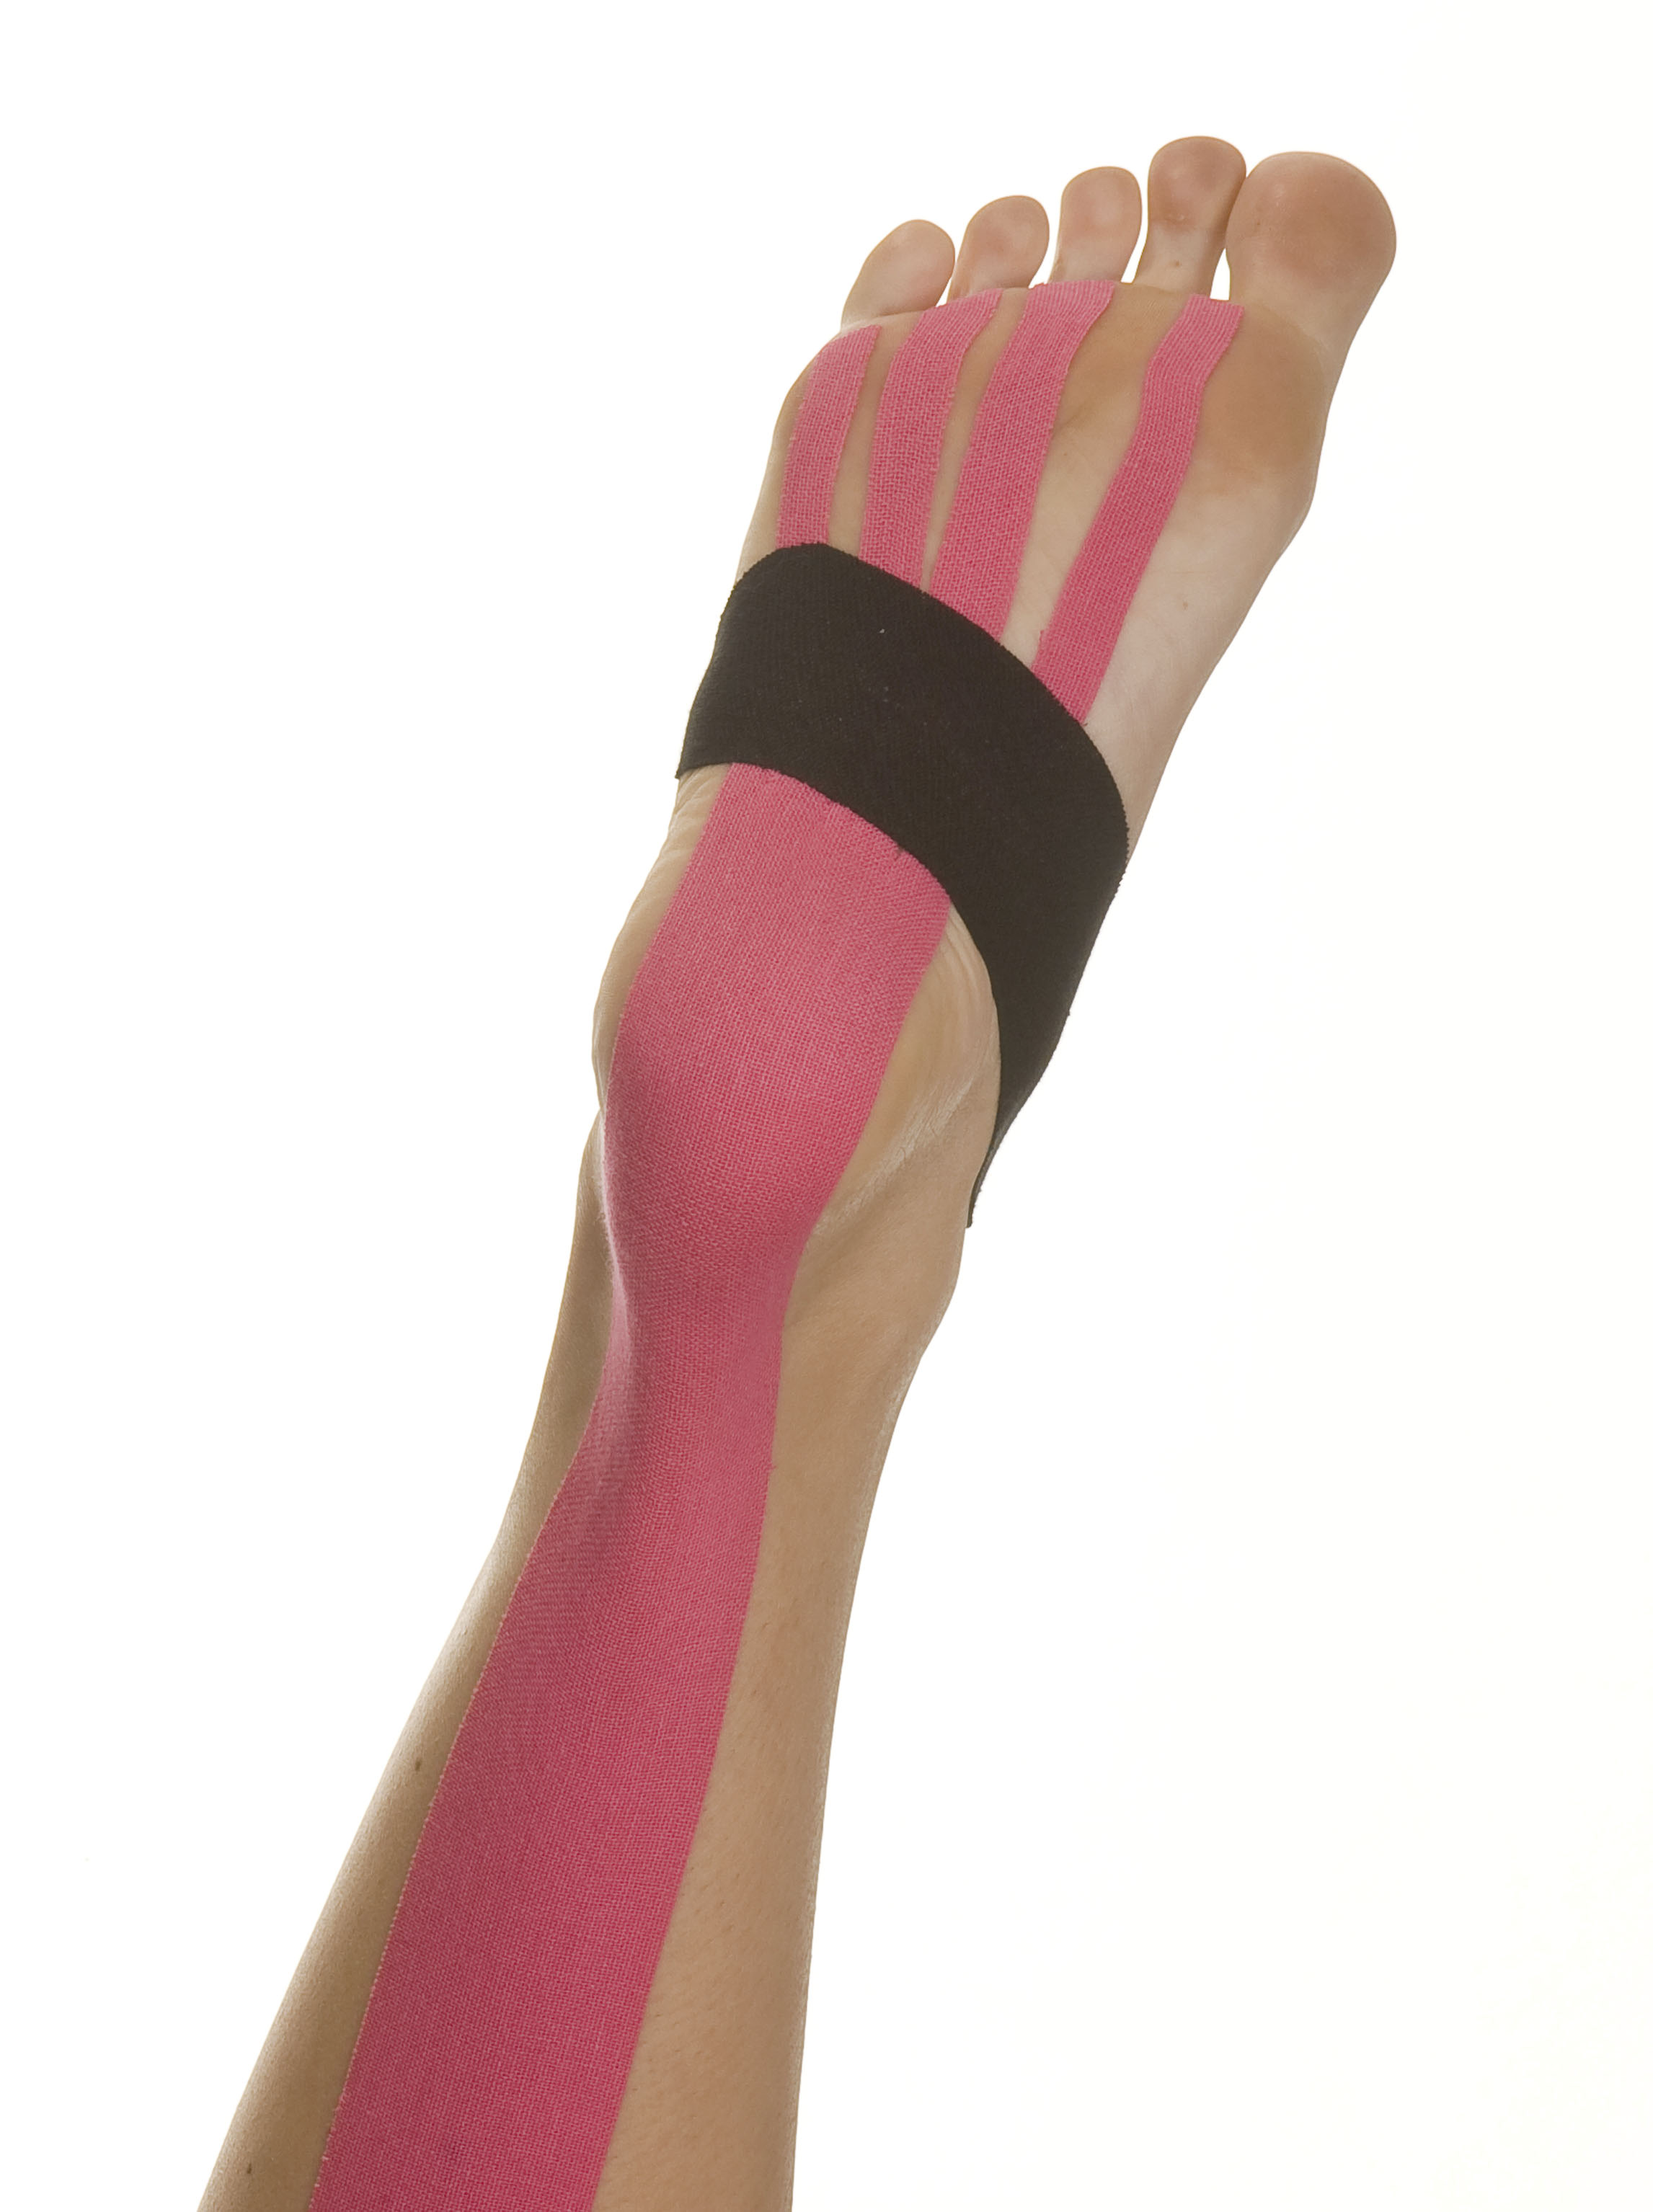 How to use Kinesiology Tape to help treat achilles tendinitis